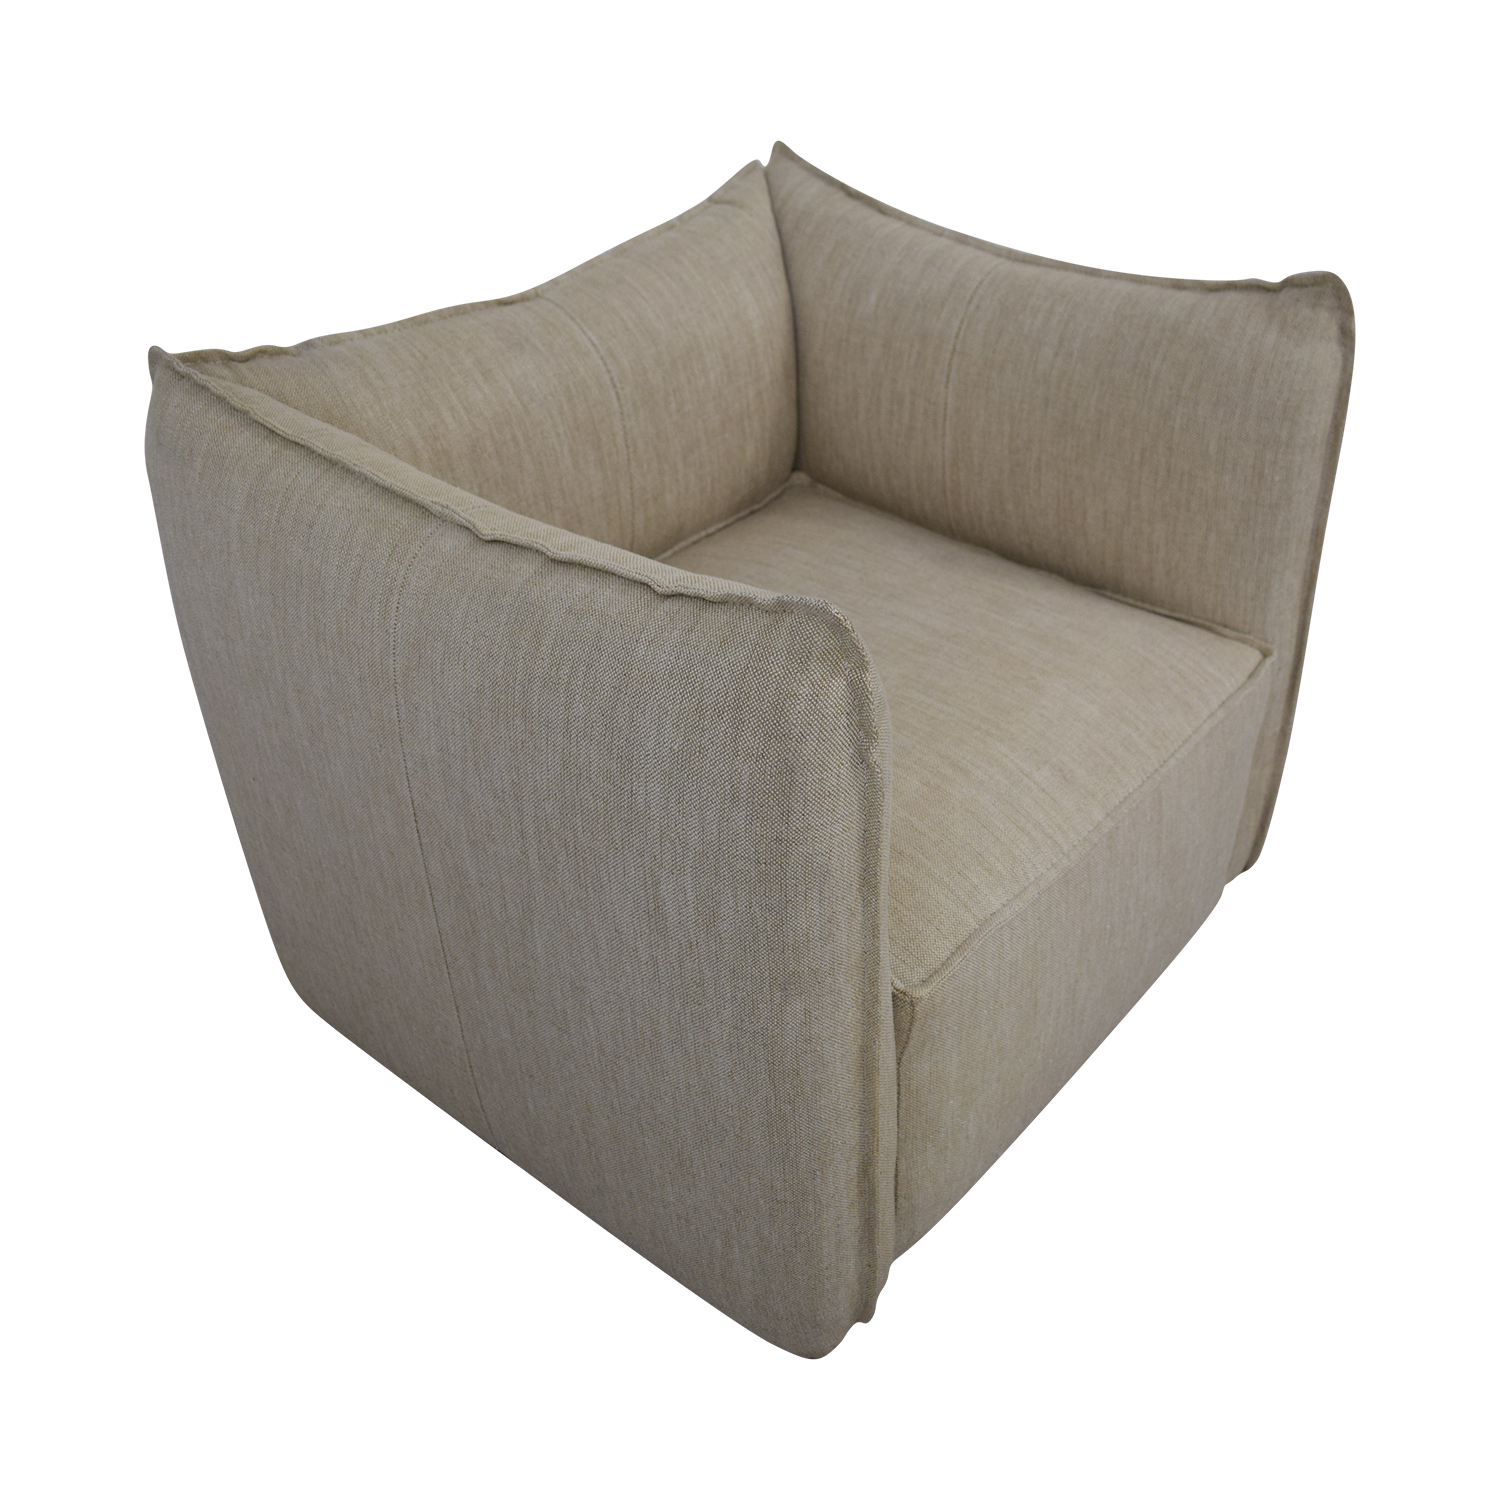 buy Restoration Hardware Restoration Hardware Peyton Arm Chair online